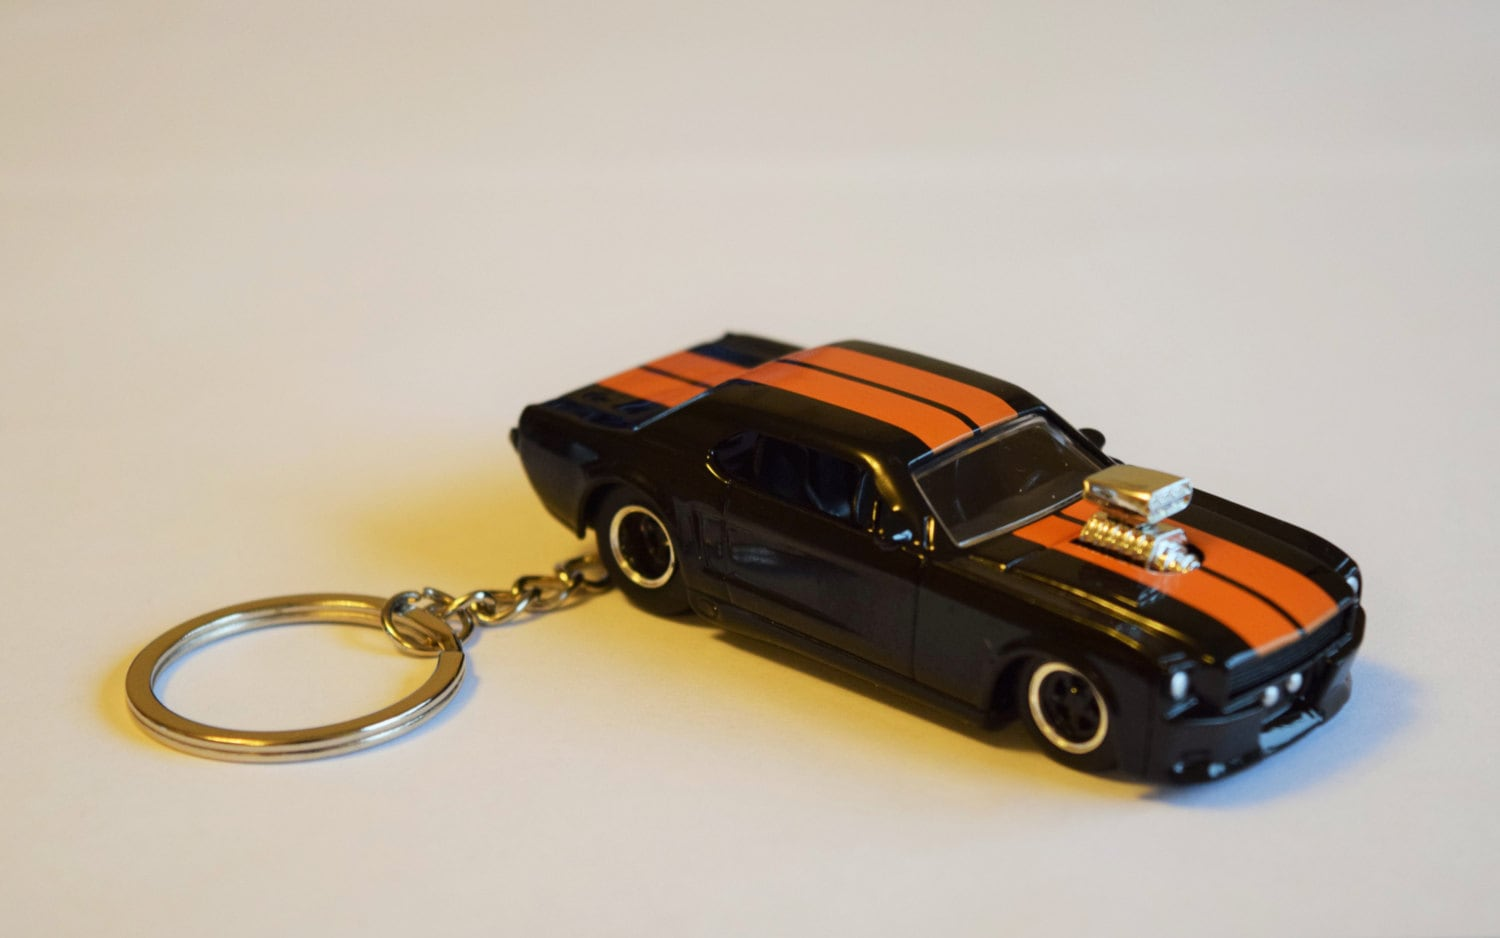 1965 Ford Mustang Keychain